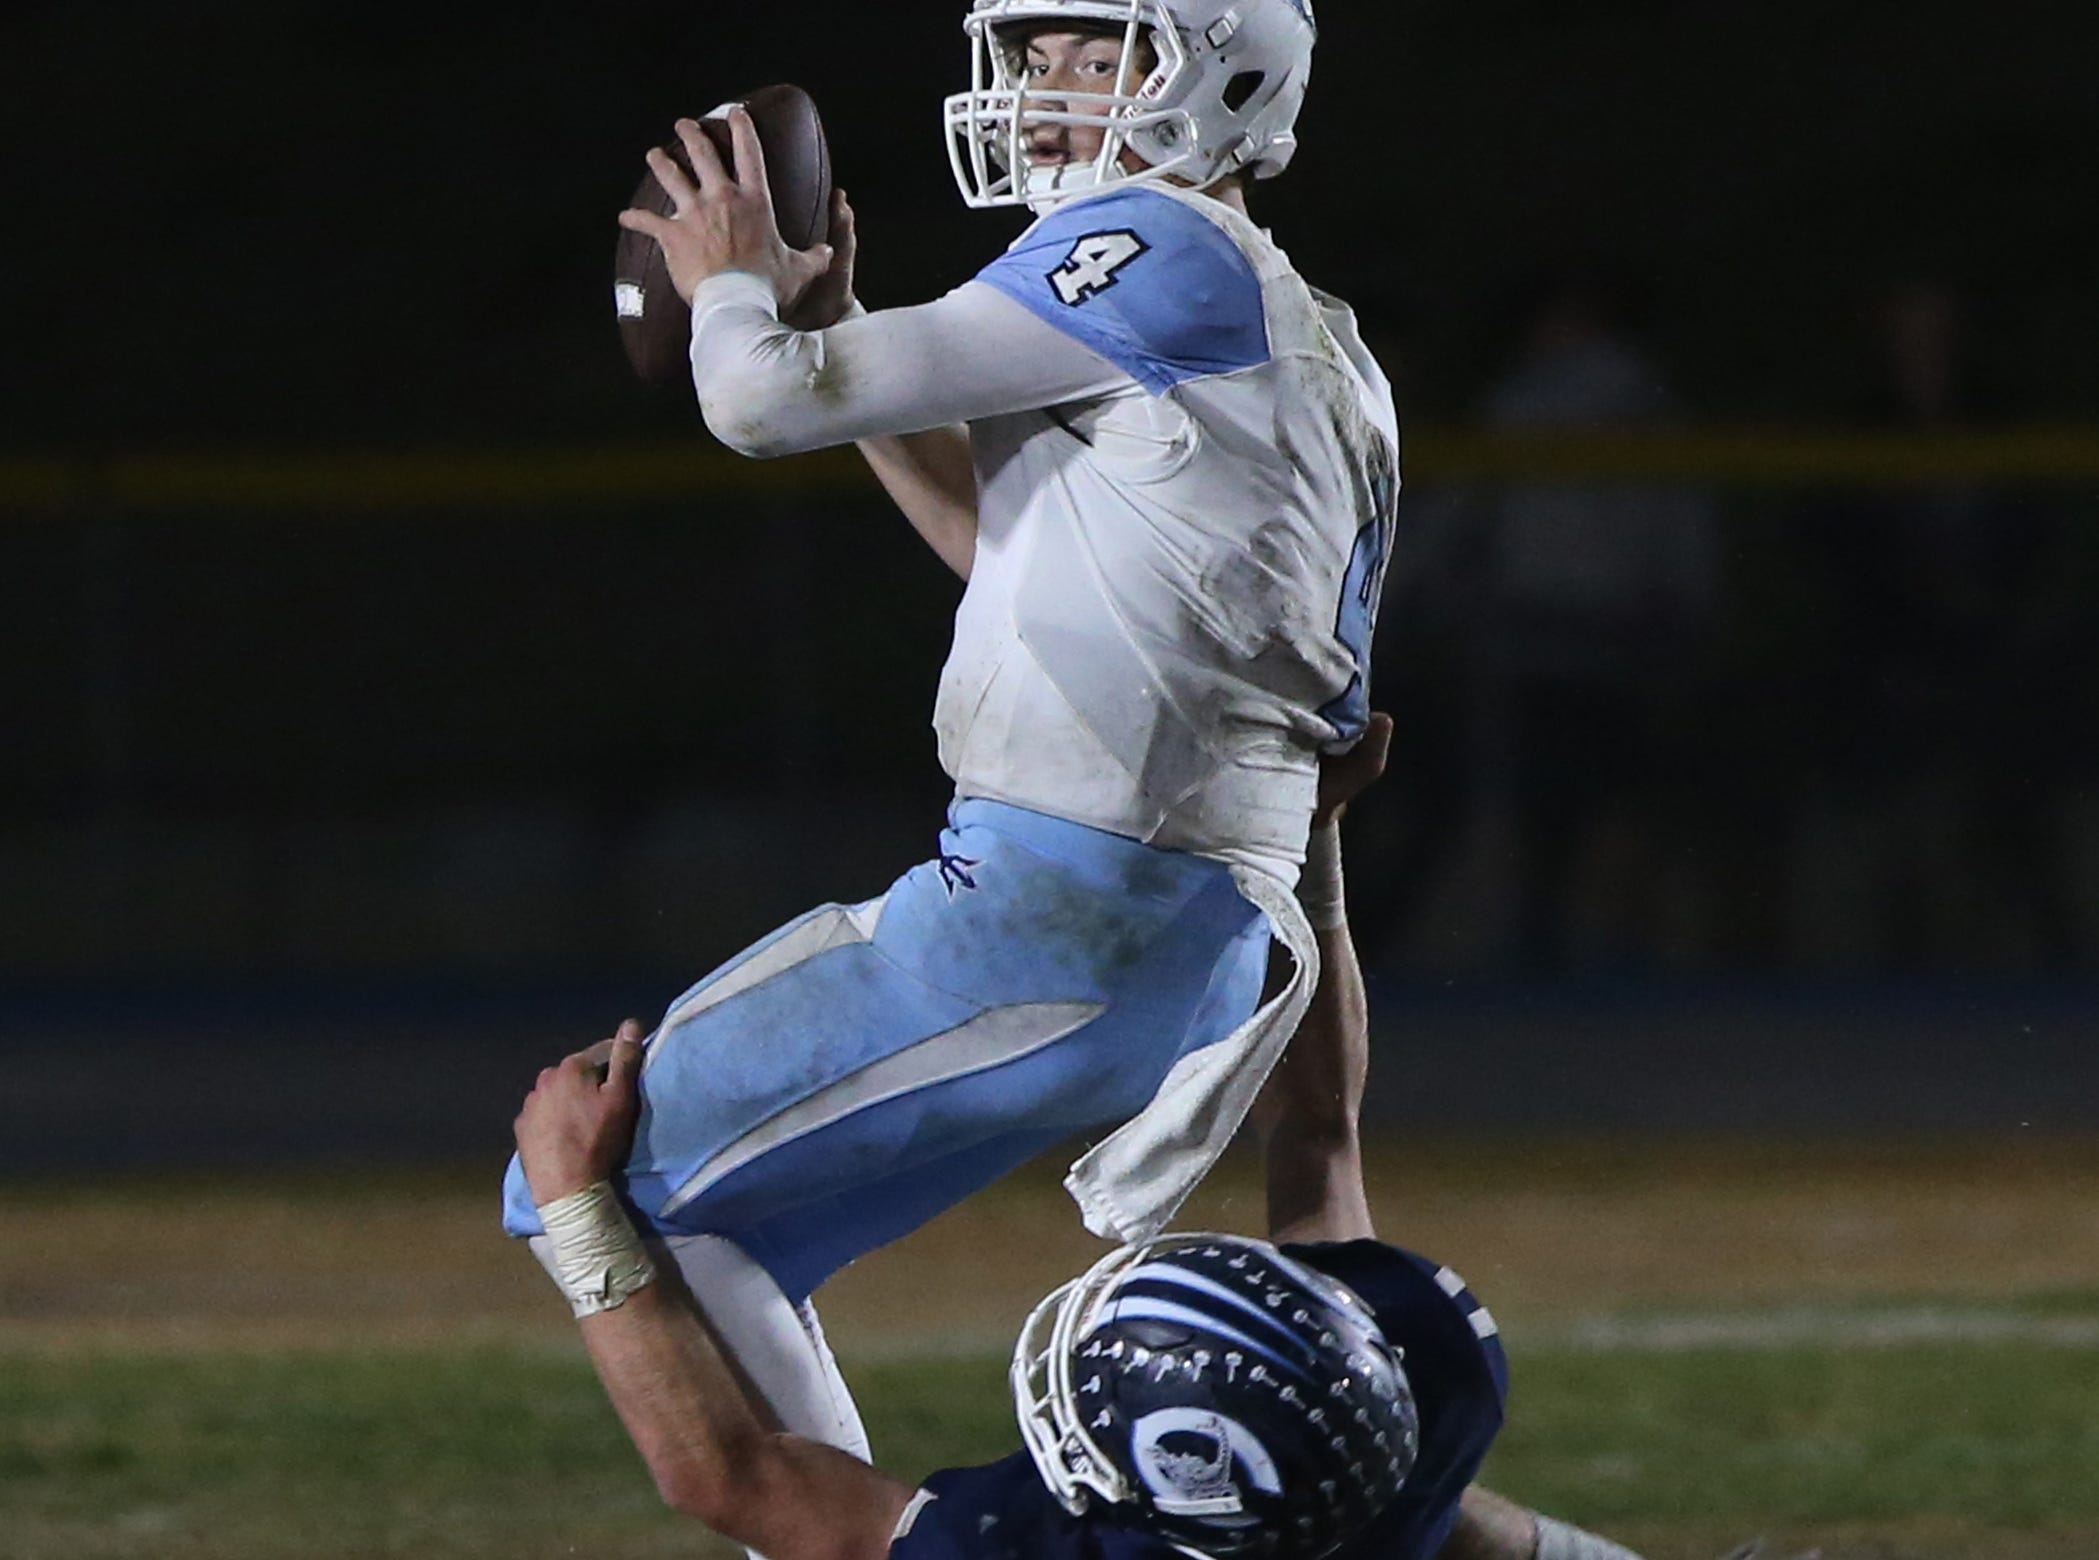 Camarillo High's Drew Carter pulls down Corona del Mar quarterback Ethan Garbers during Friday night's playoff game.